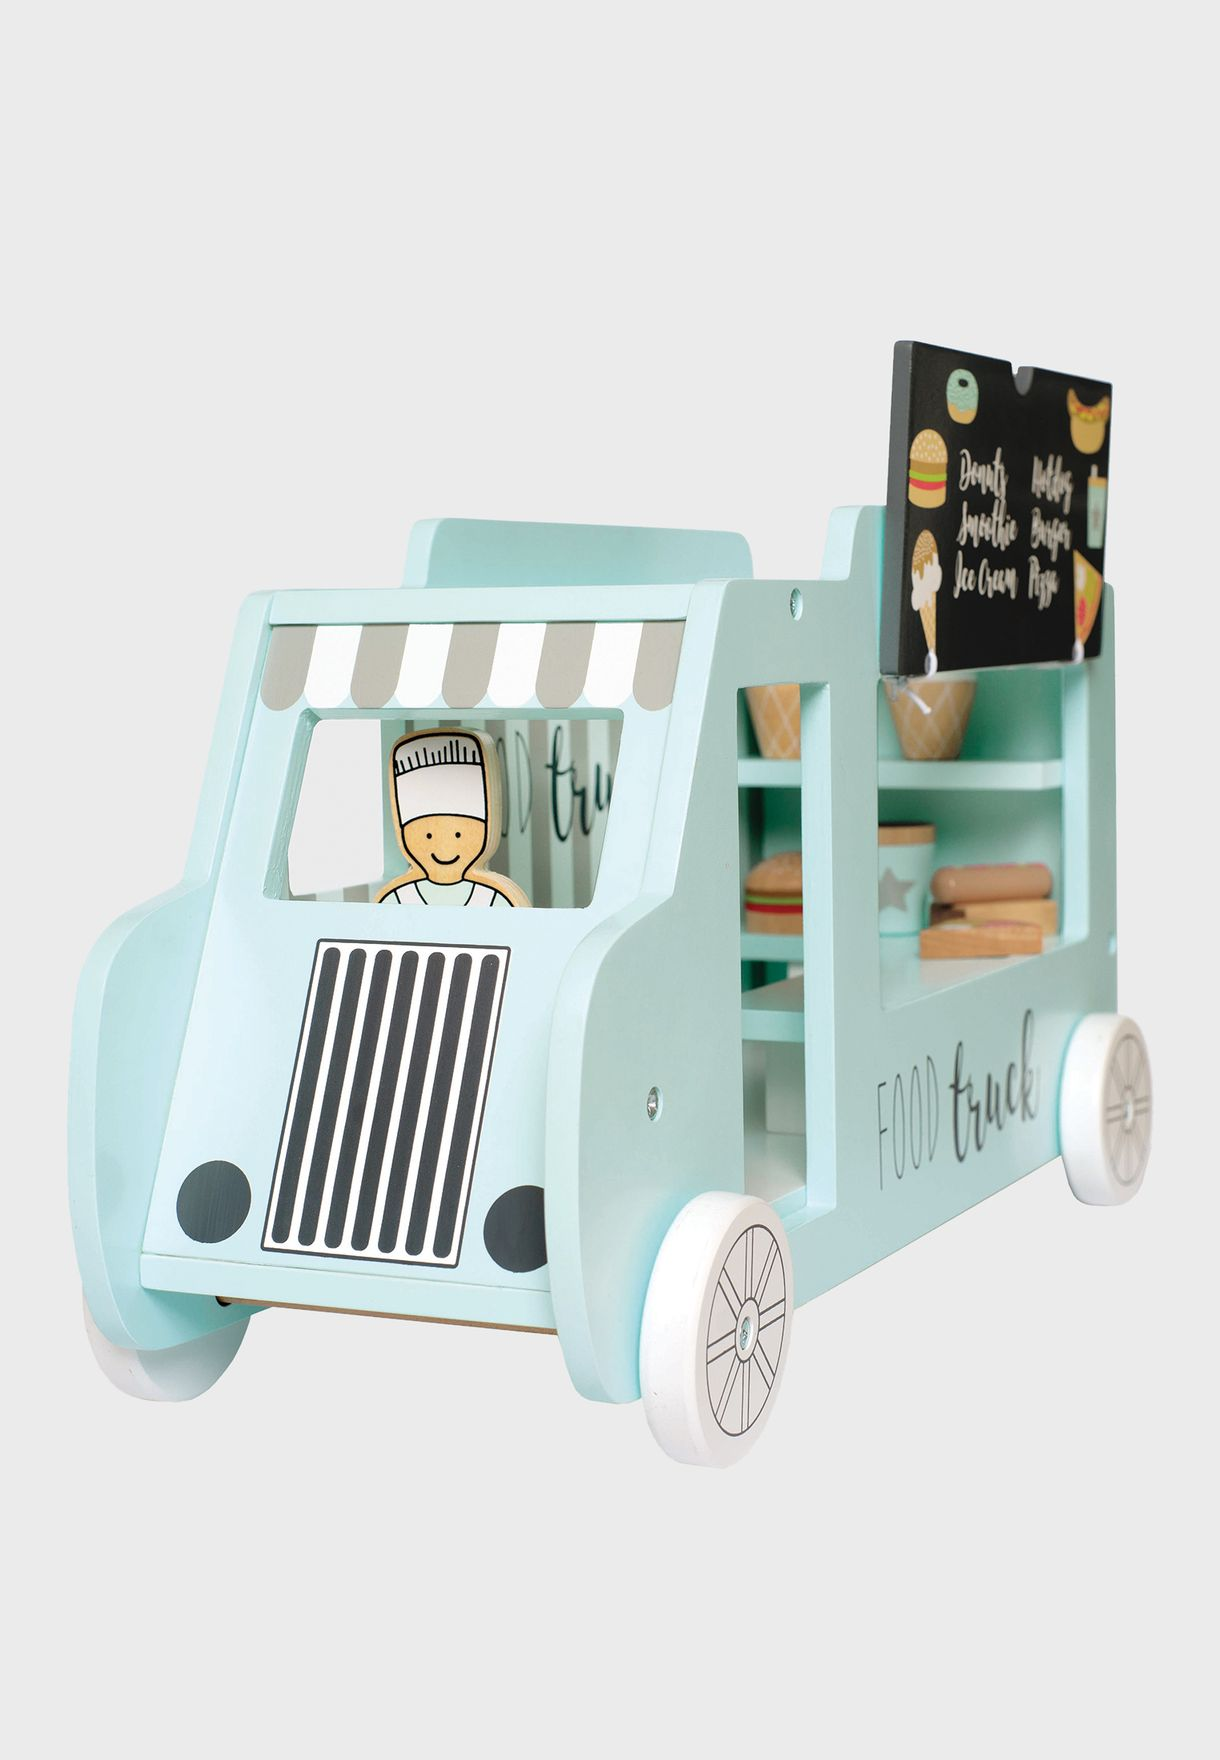 Kids Food Truck Toy